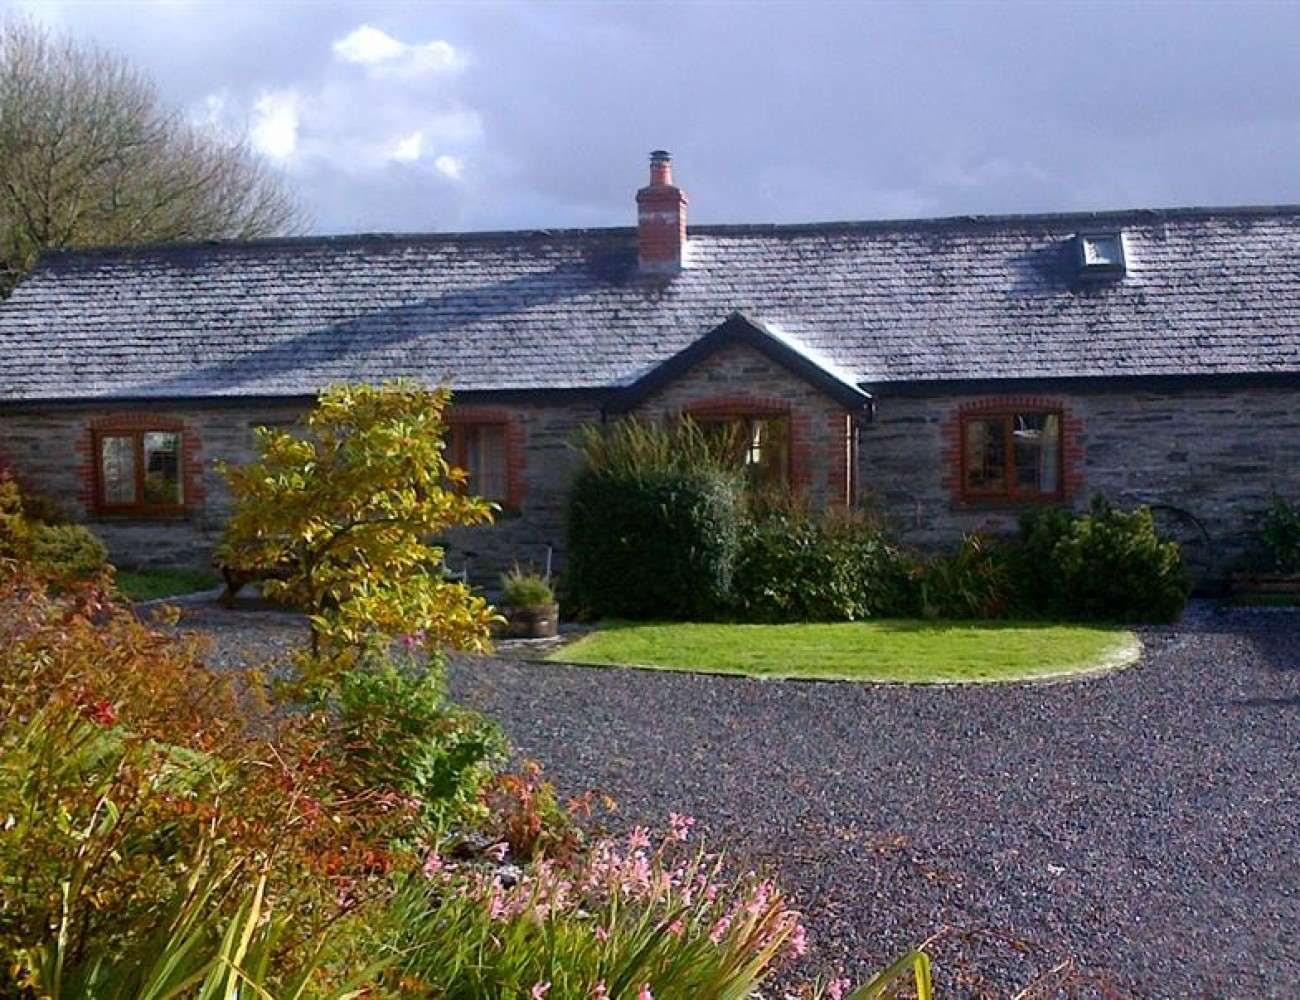 The Barn At Croft Farm - Unique Holiday Cottages